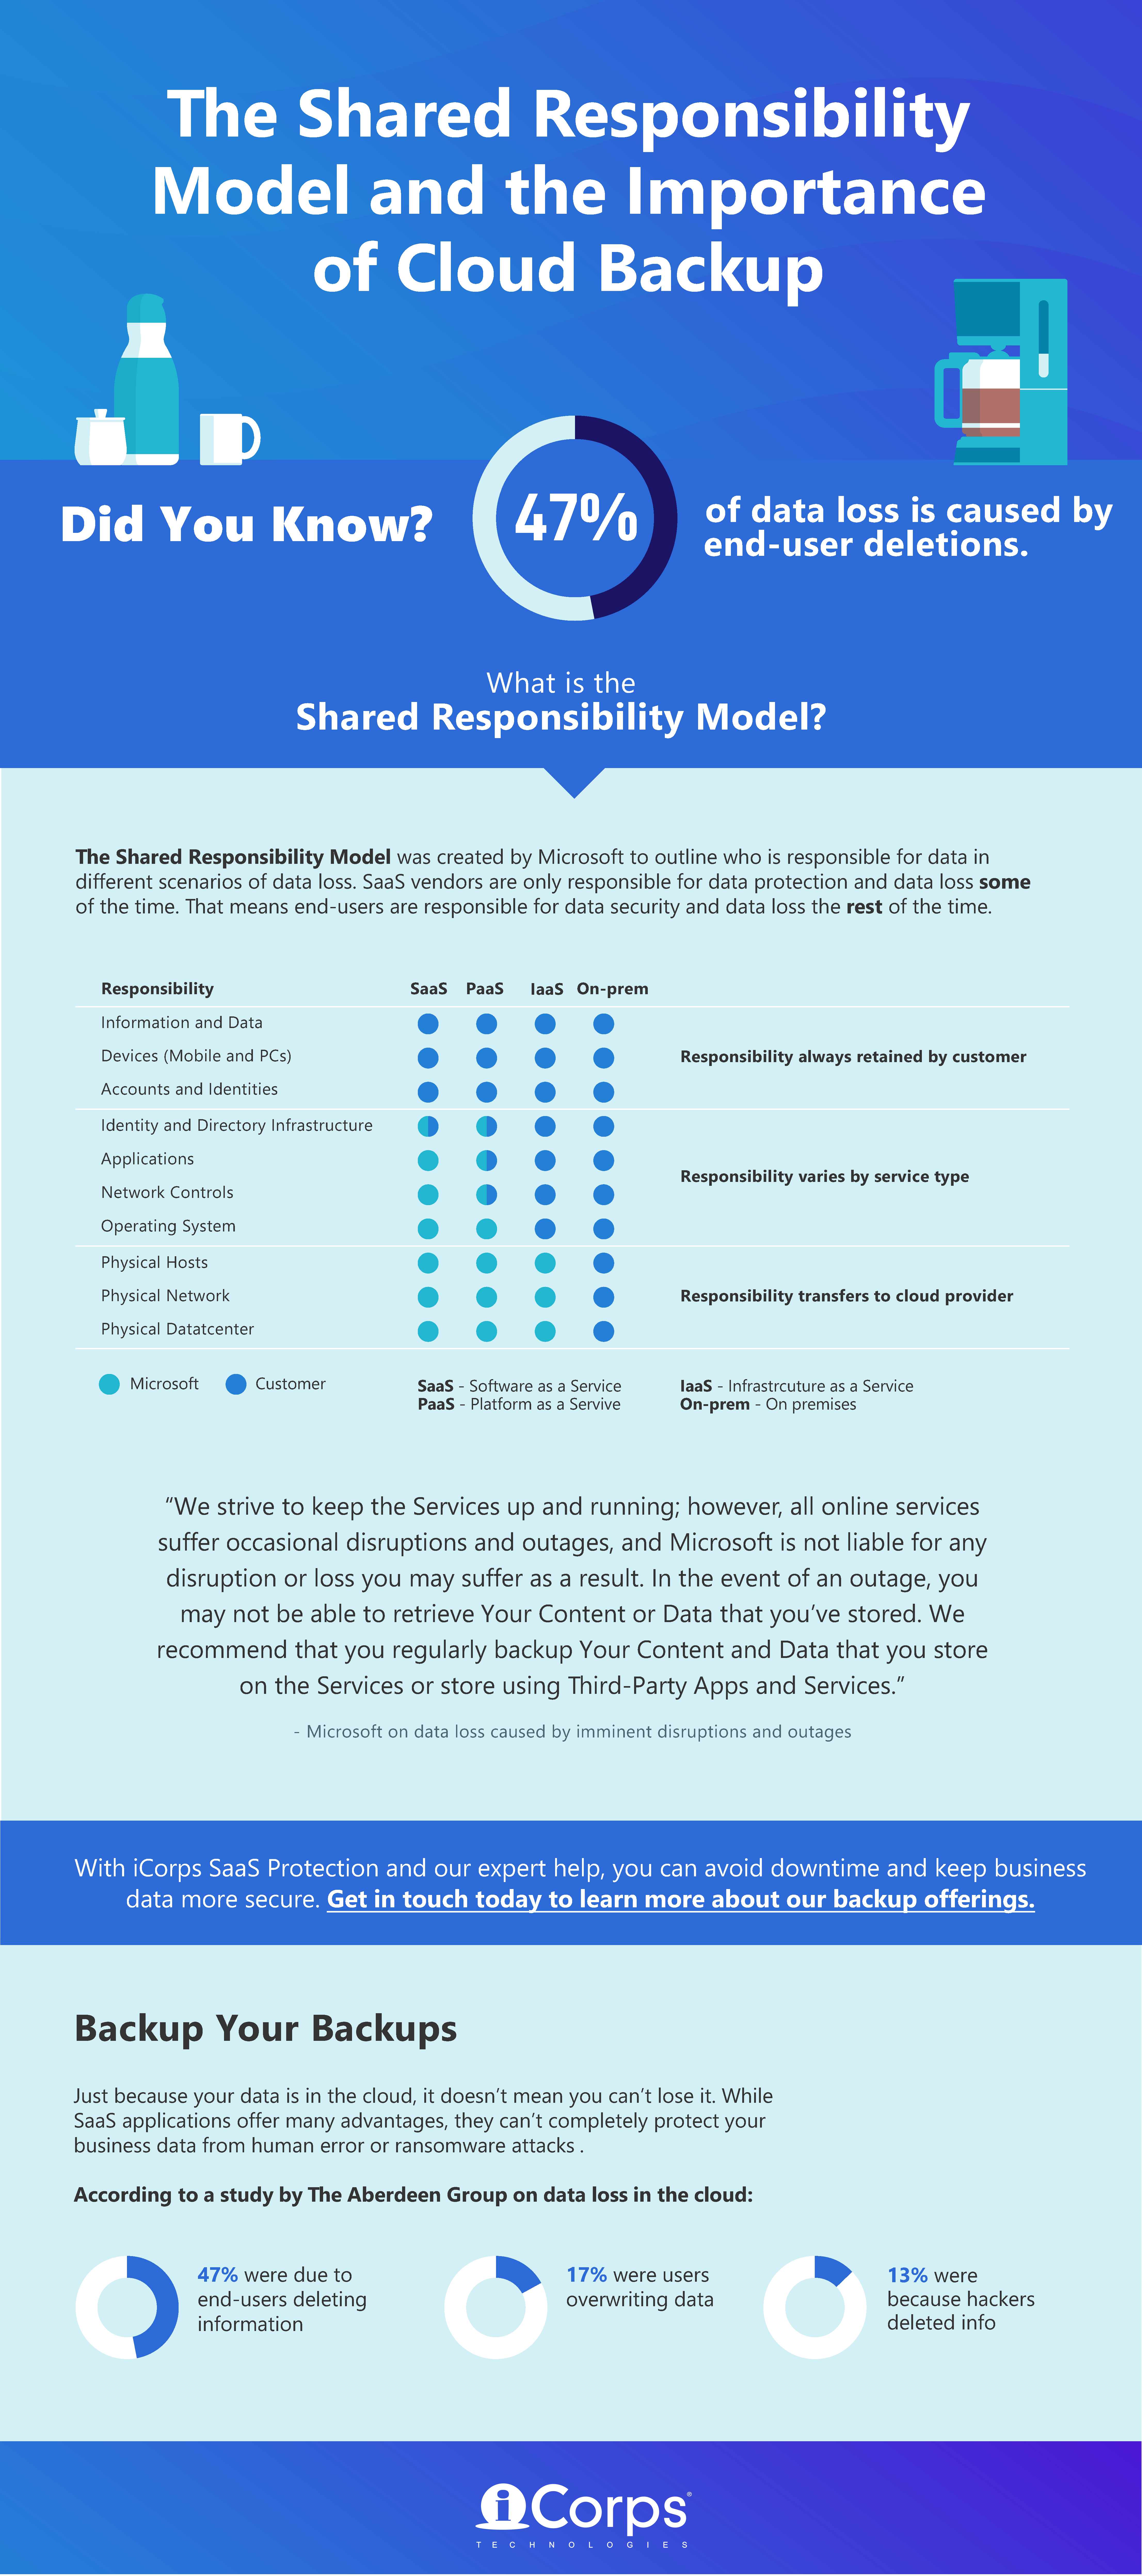 [INFOGRAPHIC] The Shared Responsibility Model and the Importance of Cloud Backup